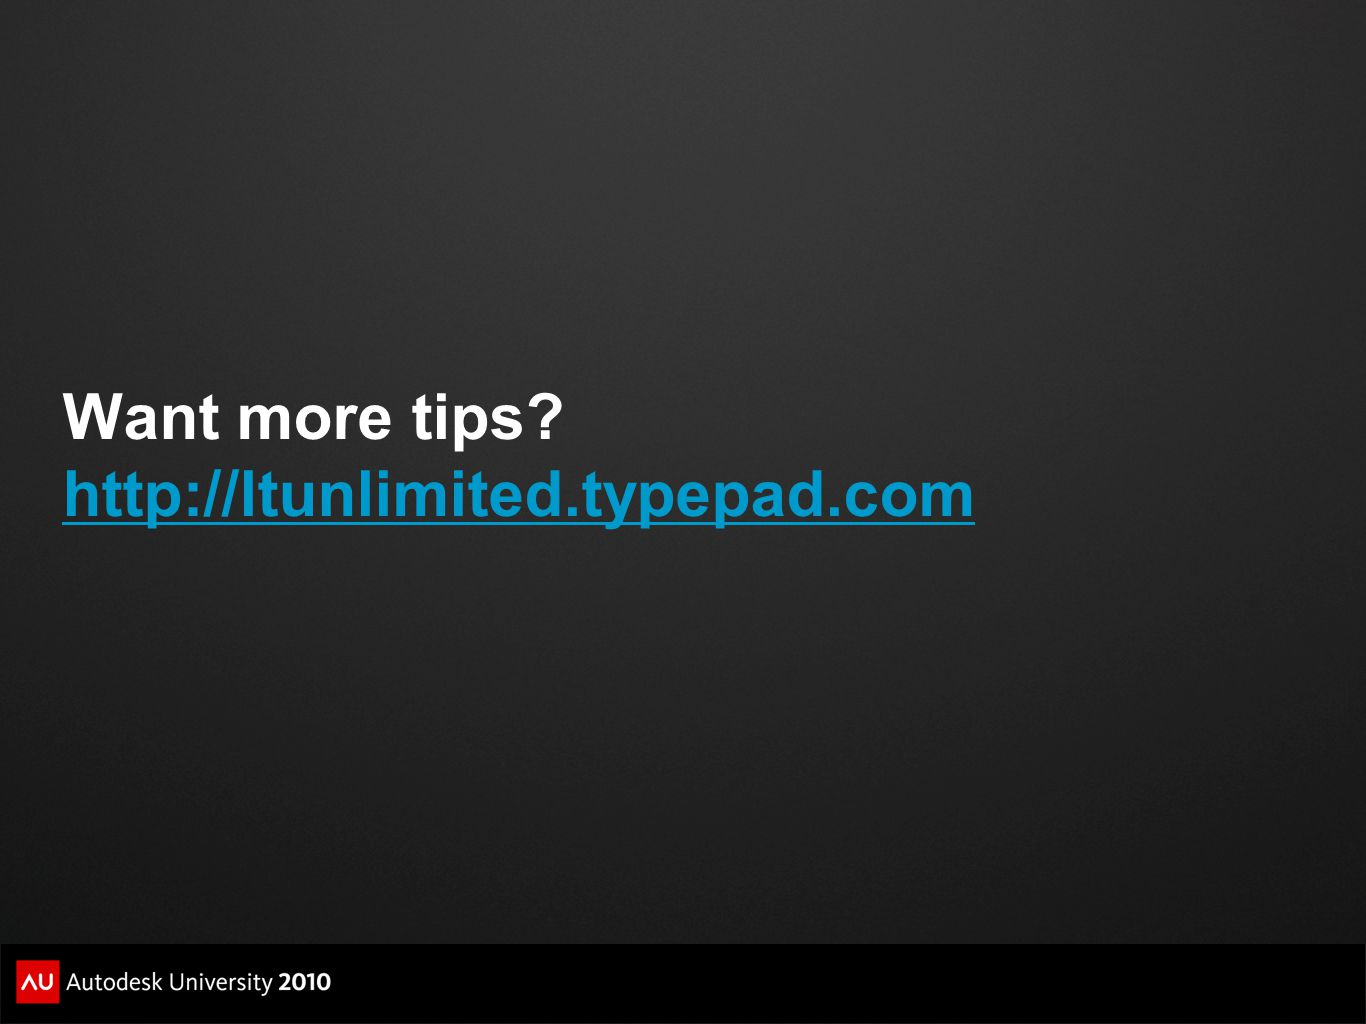 Want more tips? http://ltunlimited.typepad.com http://ltunlimited.typepad.com